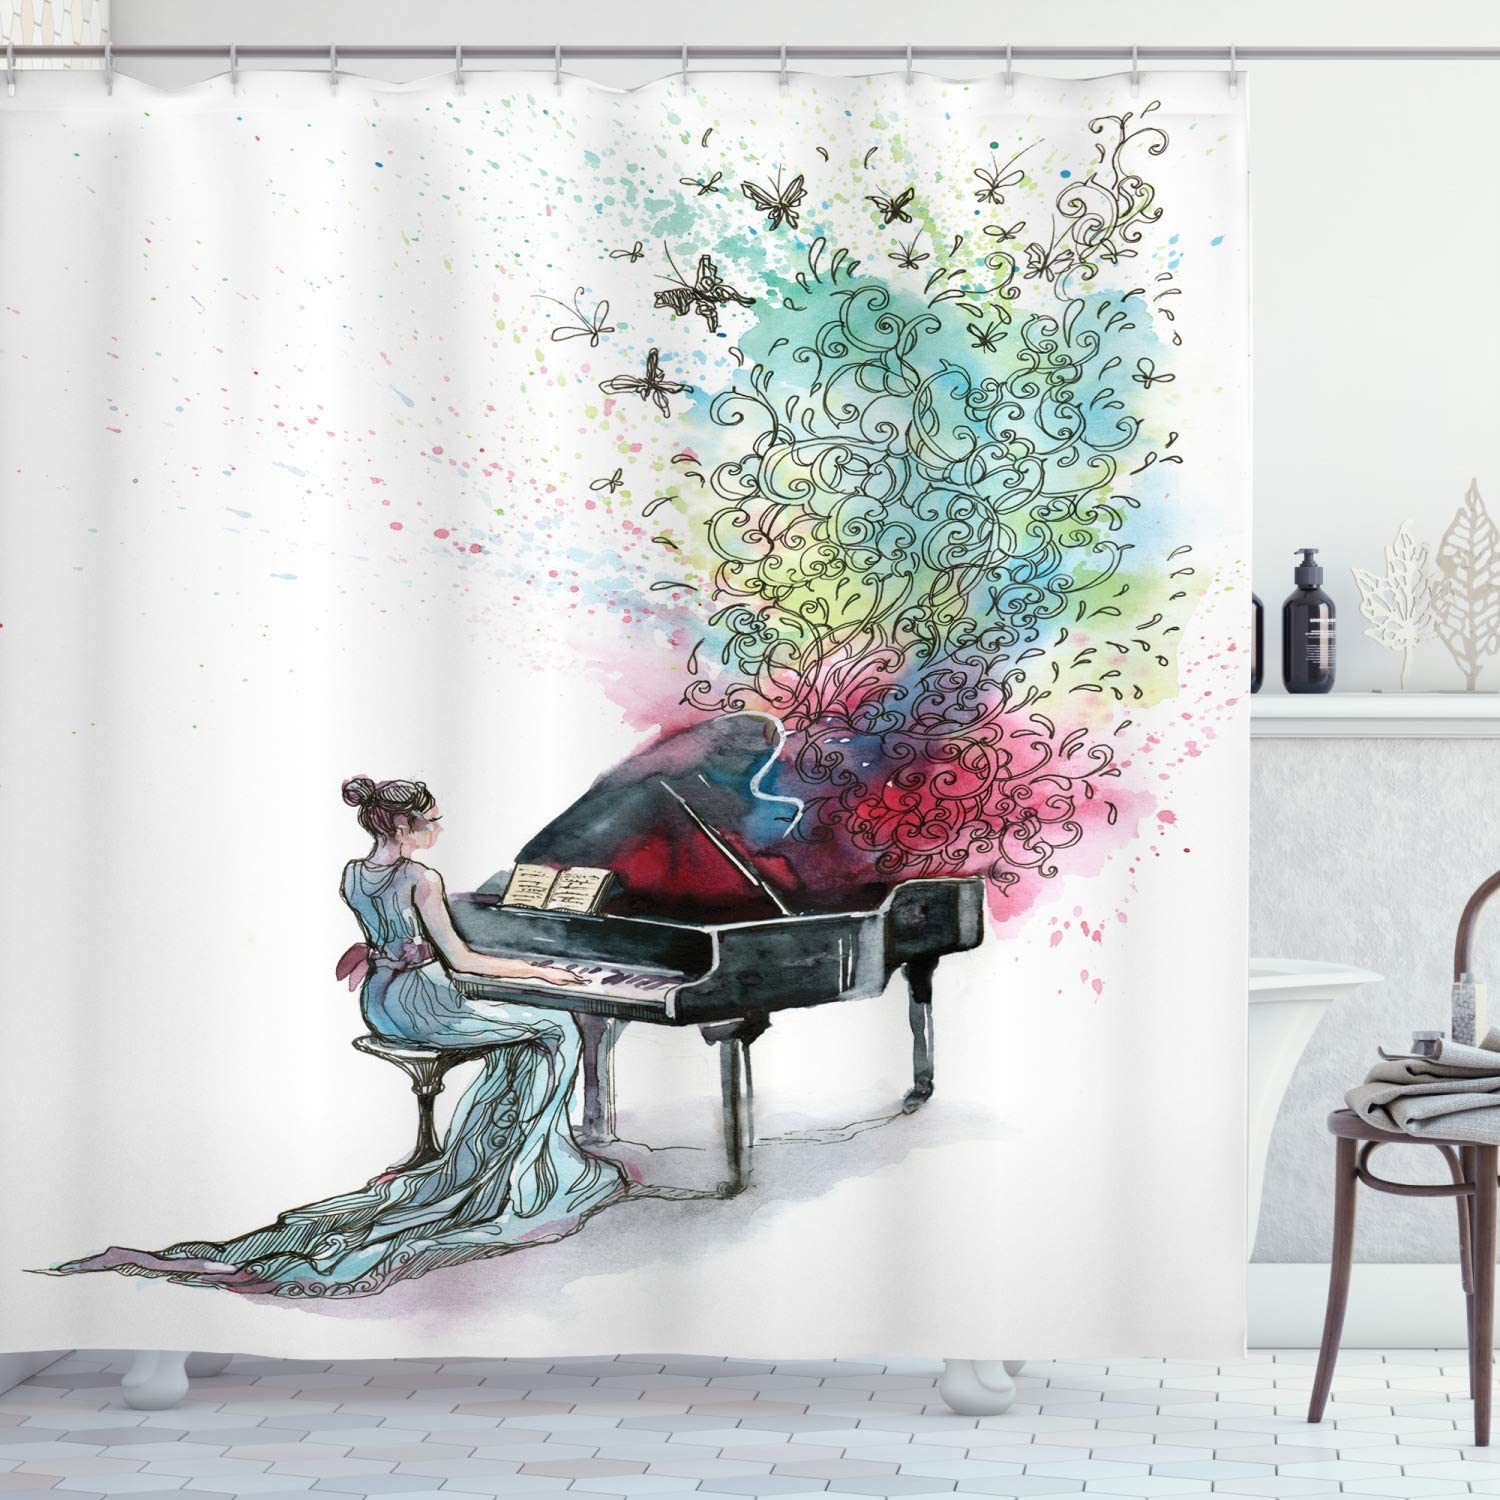 """Ambesonne Music Shower Curtain, Grand Piano Music Musician with Butterflies Ornamental Pianist Swirls Vintage Style, Cloth Fabric Bathroom Decor Set with Hooks, 75"""" Long, Pink Green"""